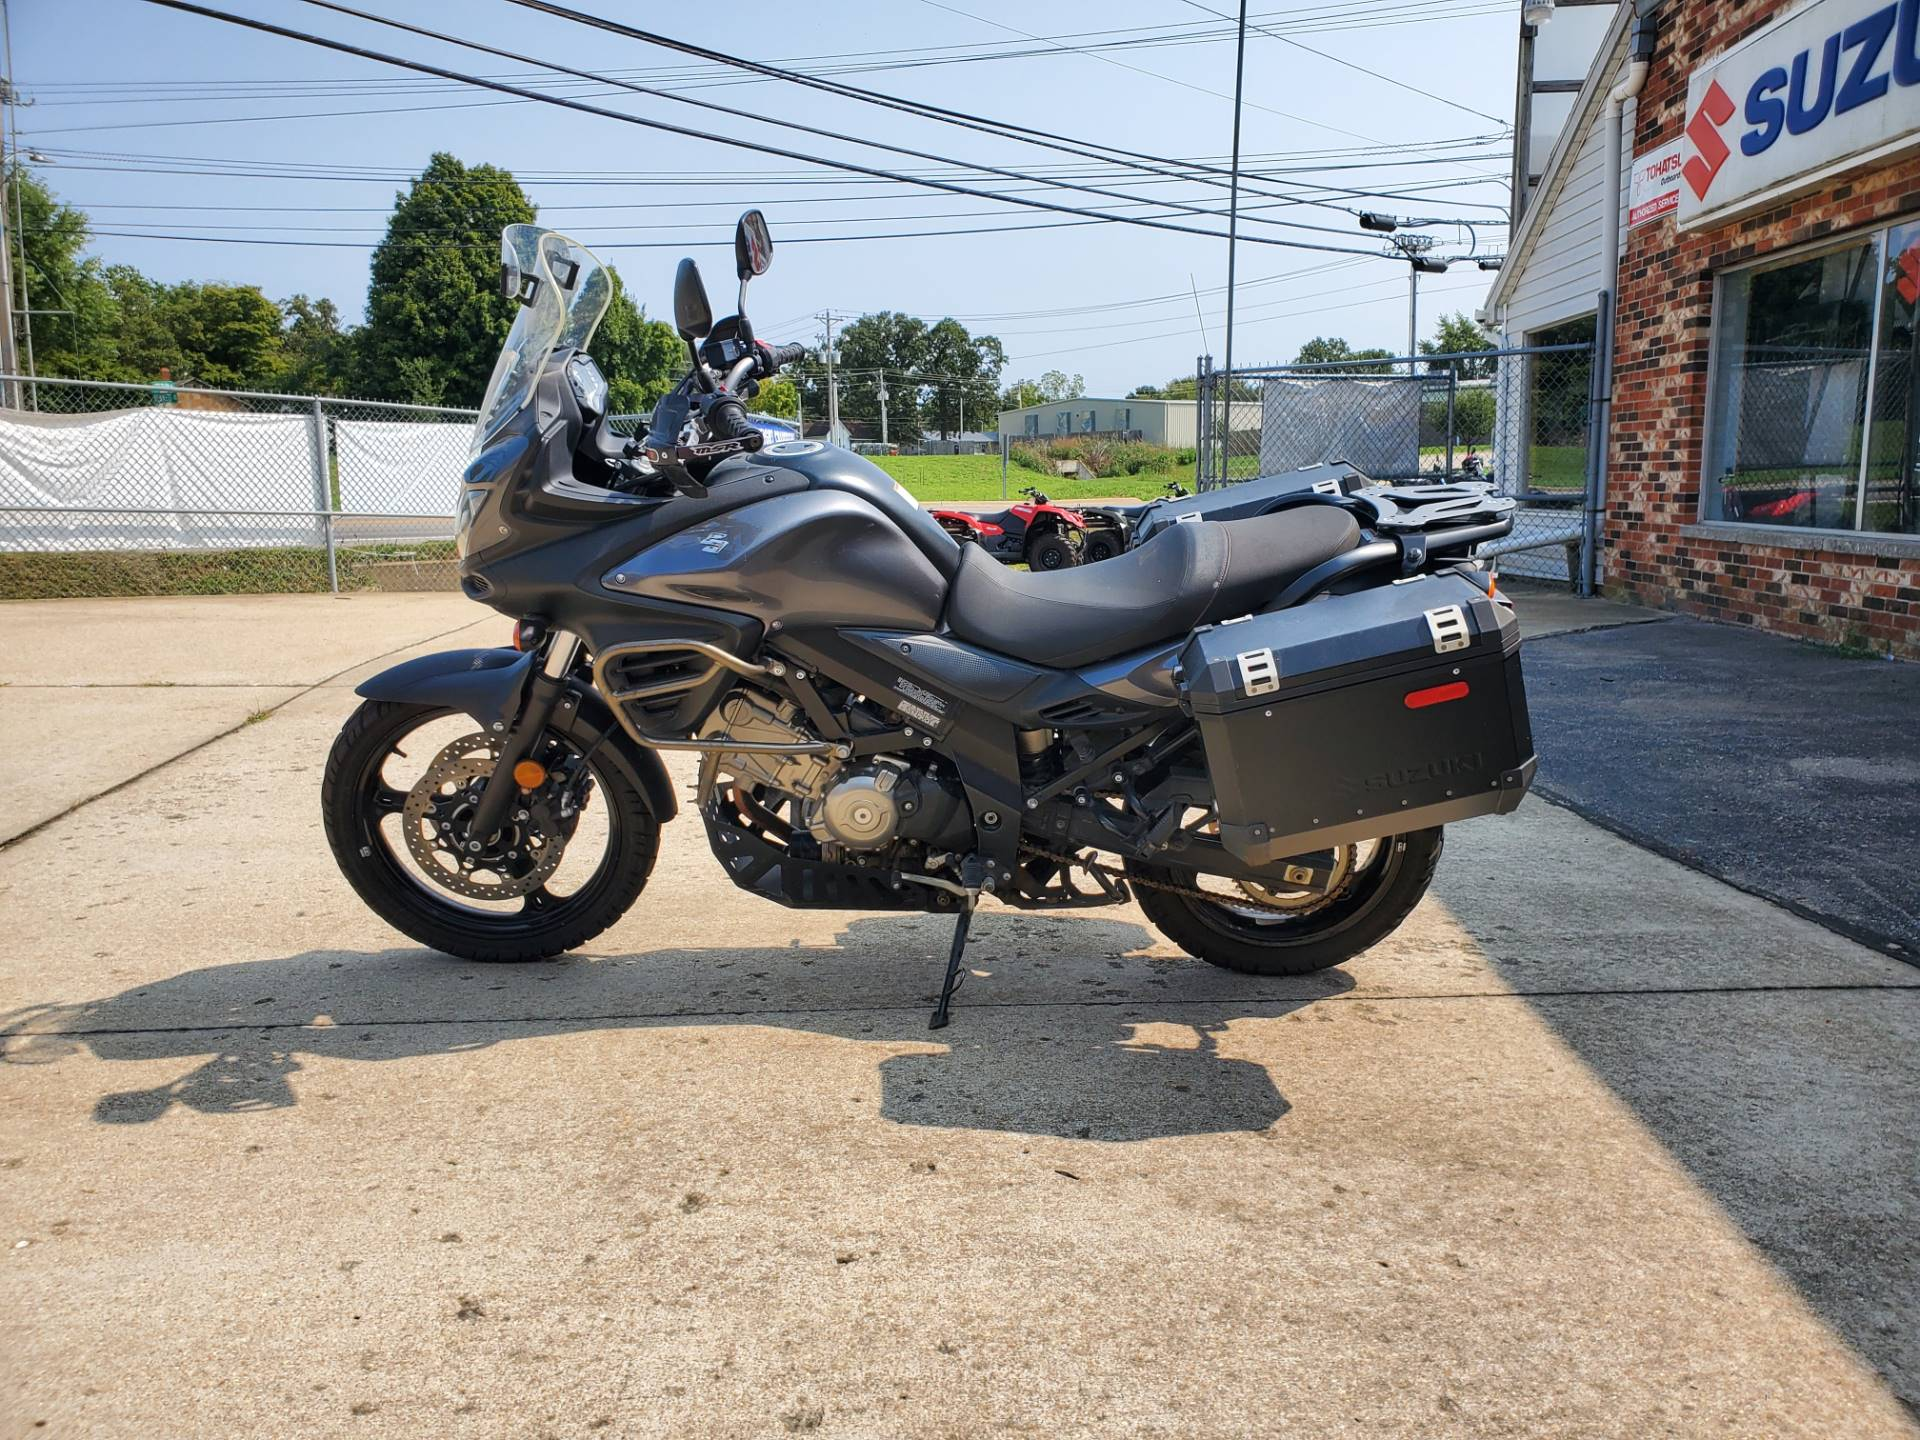 2014 Suzuki V-Strom 650 ABS Adventure in Lebanon, Missouri - Photo 1